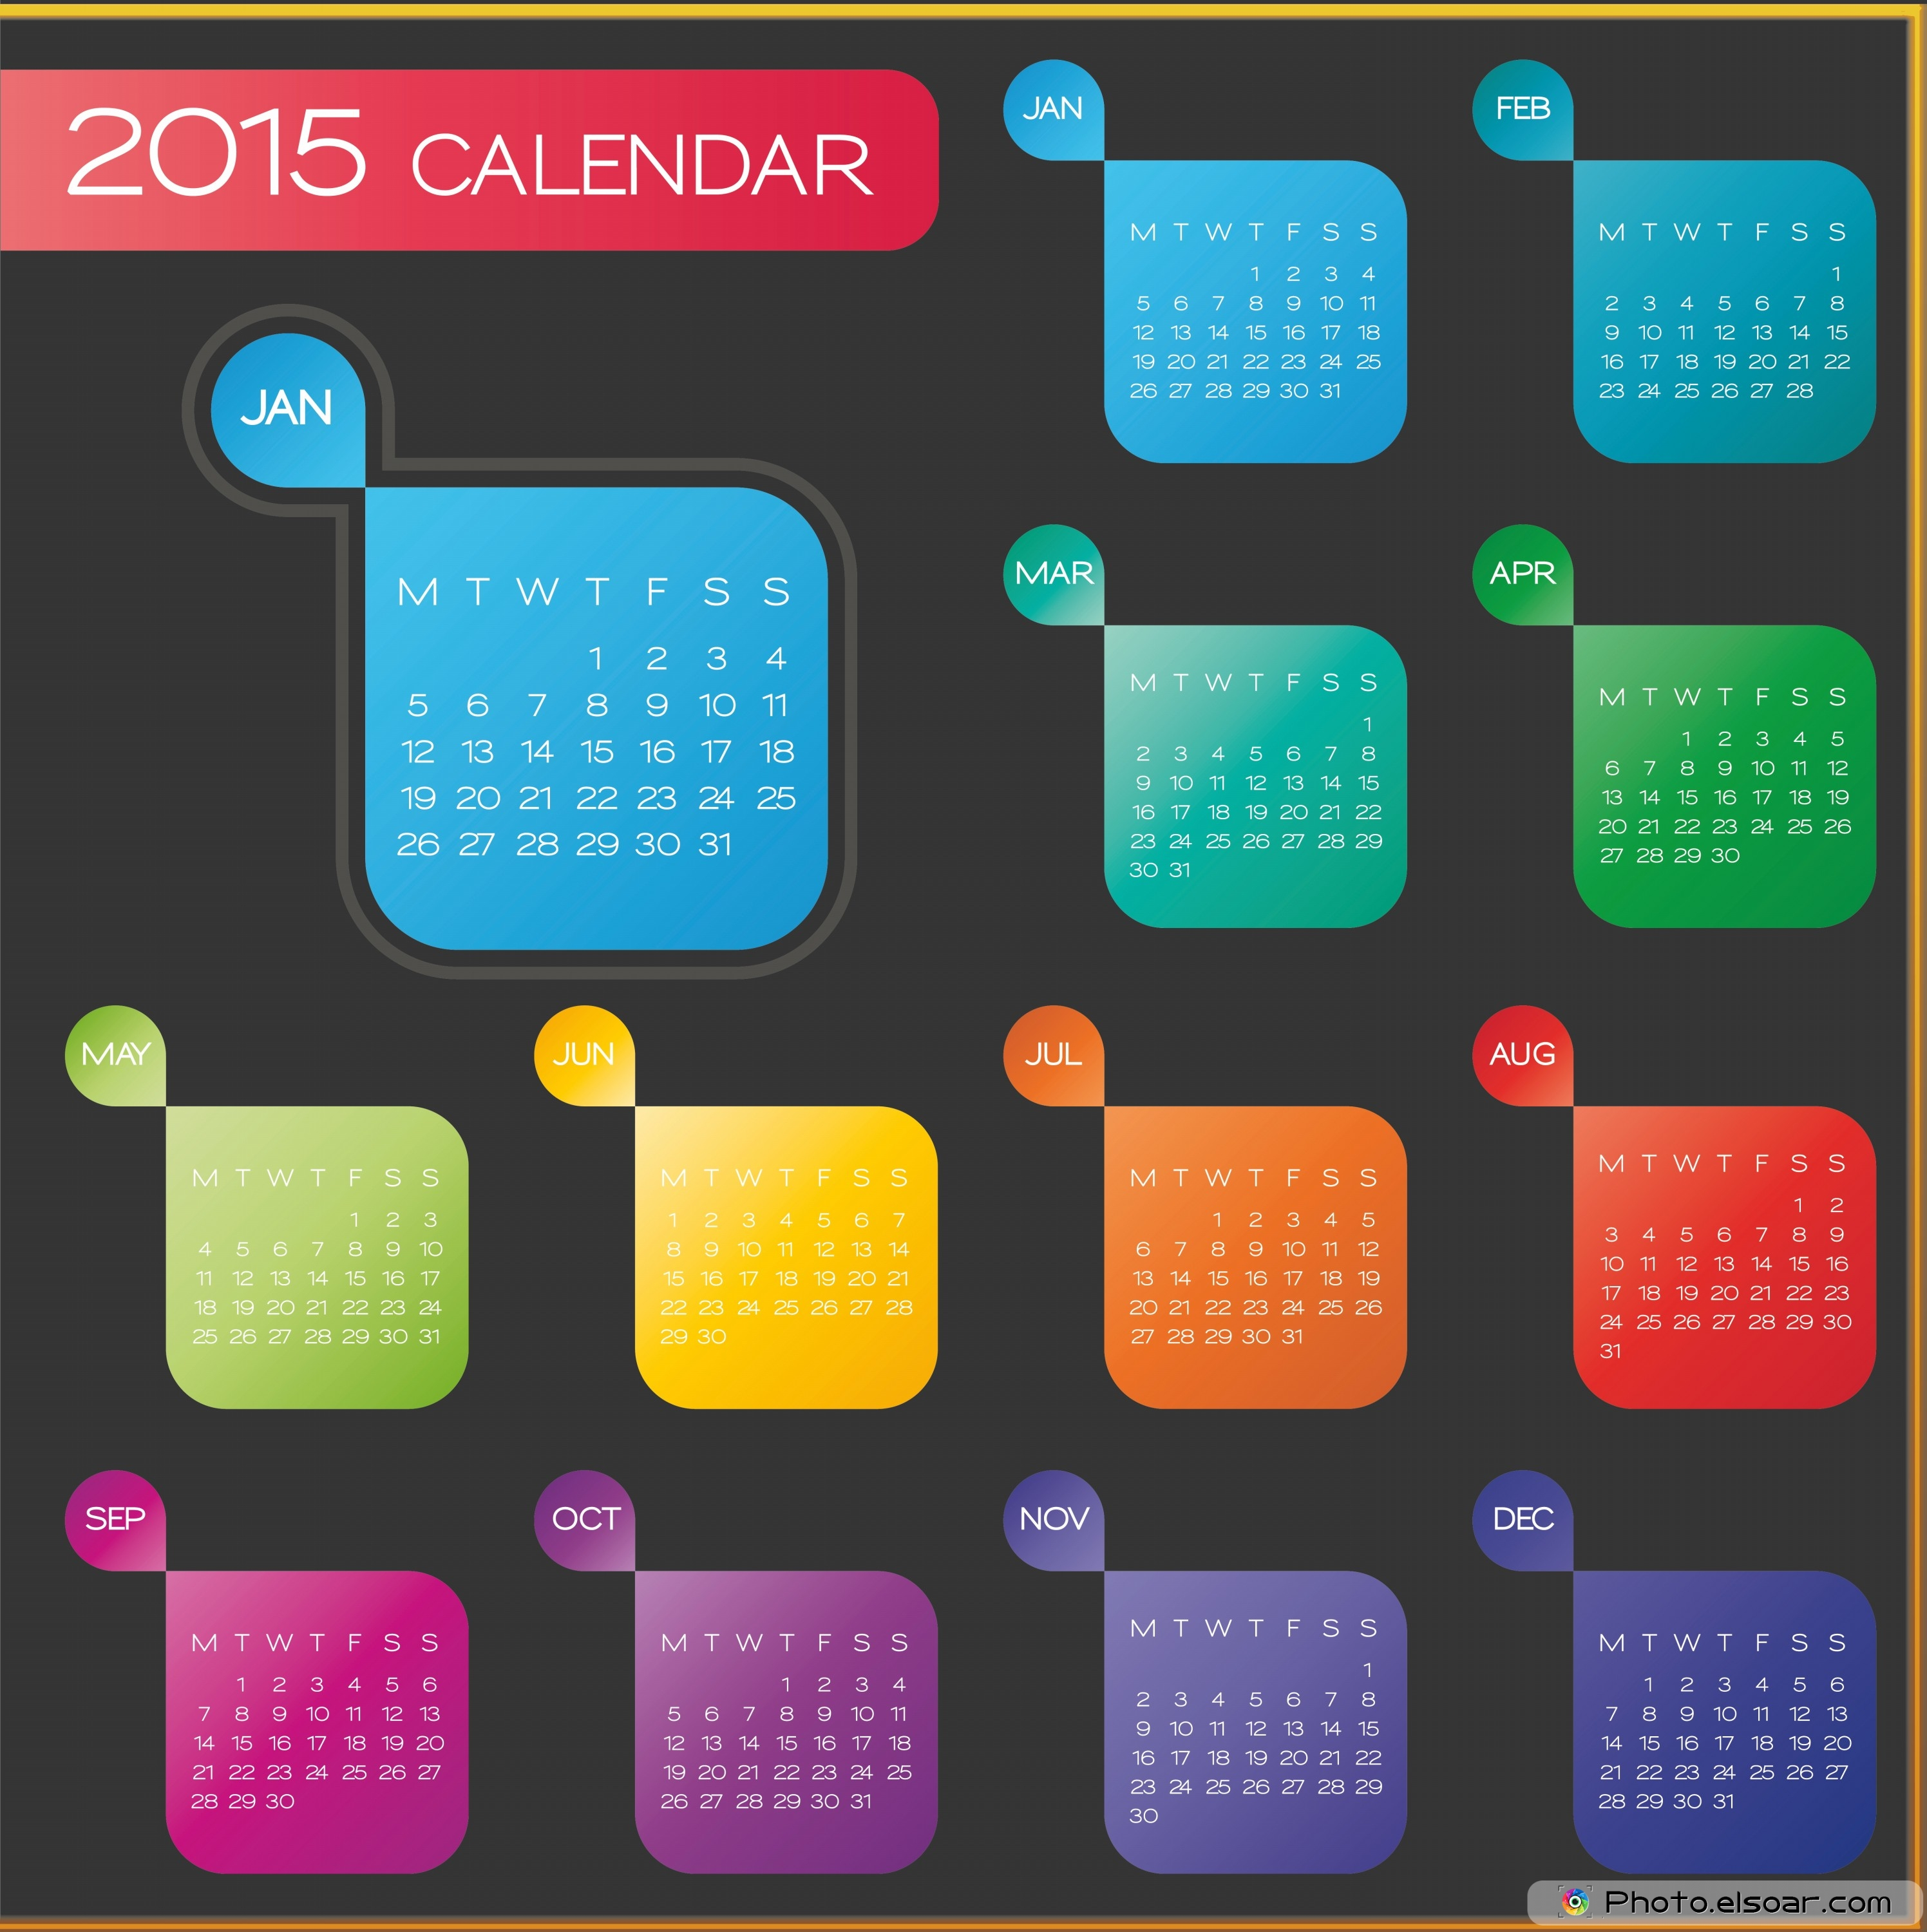 Nice 1 Year Experience Resume In Java J2ee Thick 10 Half Hexagon Template Rectangular 1st Time Resume Templates 2010 Calendar Template Old 2015 Calendar Printable Template Fresh2015 Calendar Year Template Printable Yearly Calendars For 2015 \u2013 Different Ideas \u2022 Elsoar